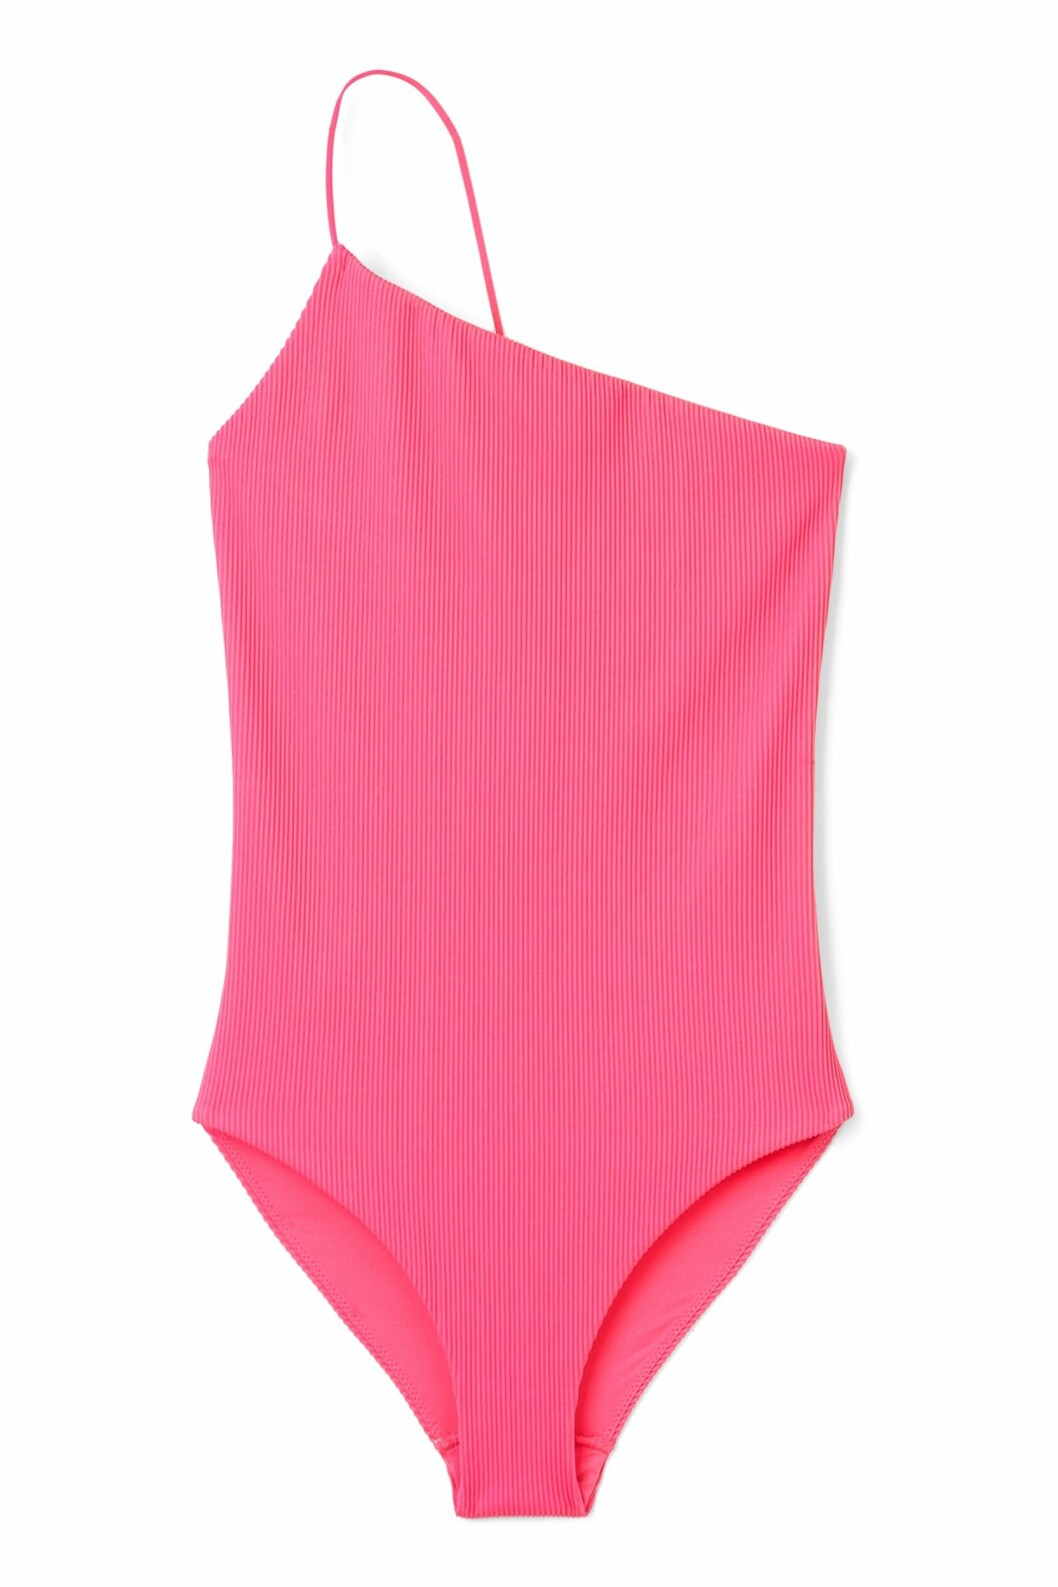 <strong>Badedrakt fra Weekday | kr 250 | http:</strong>//shop.weekday.com/se/Womens_shop/Swimwear/All/Nola_Swimsuit/8278058-11581401.1#c-47958#Rel?PC=